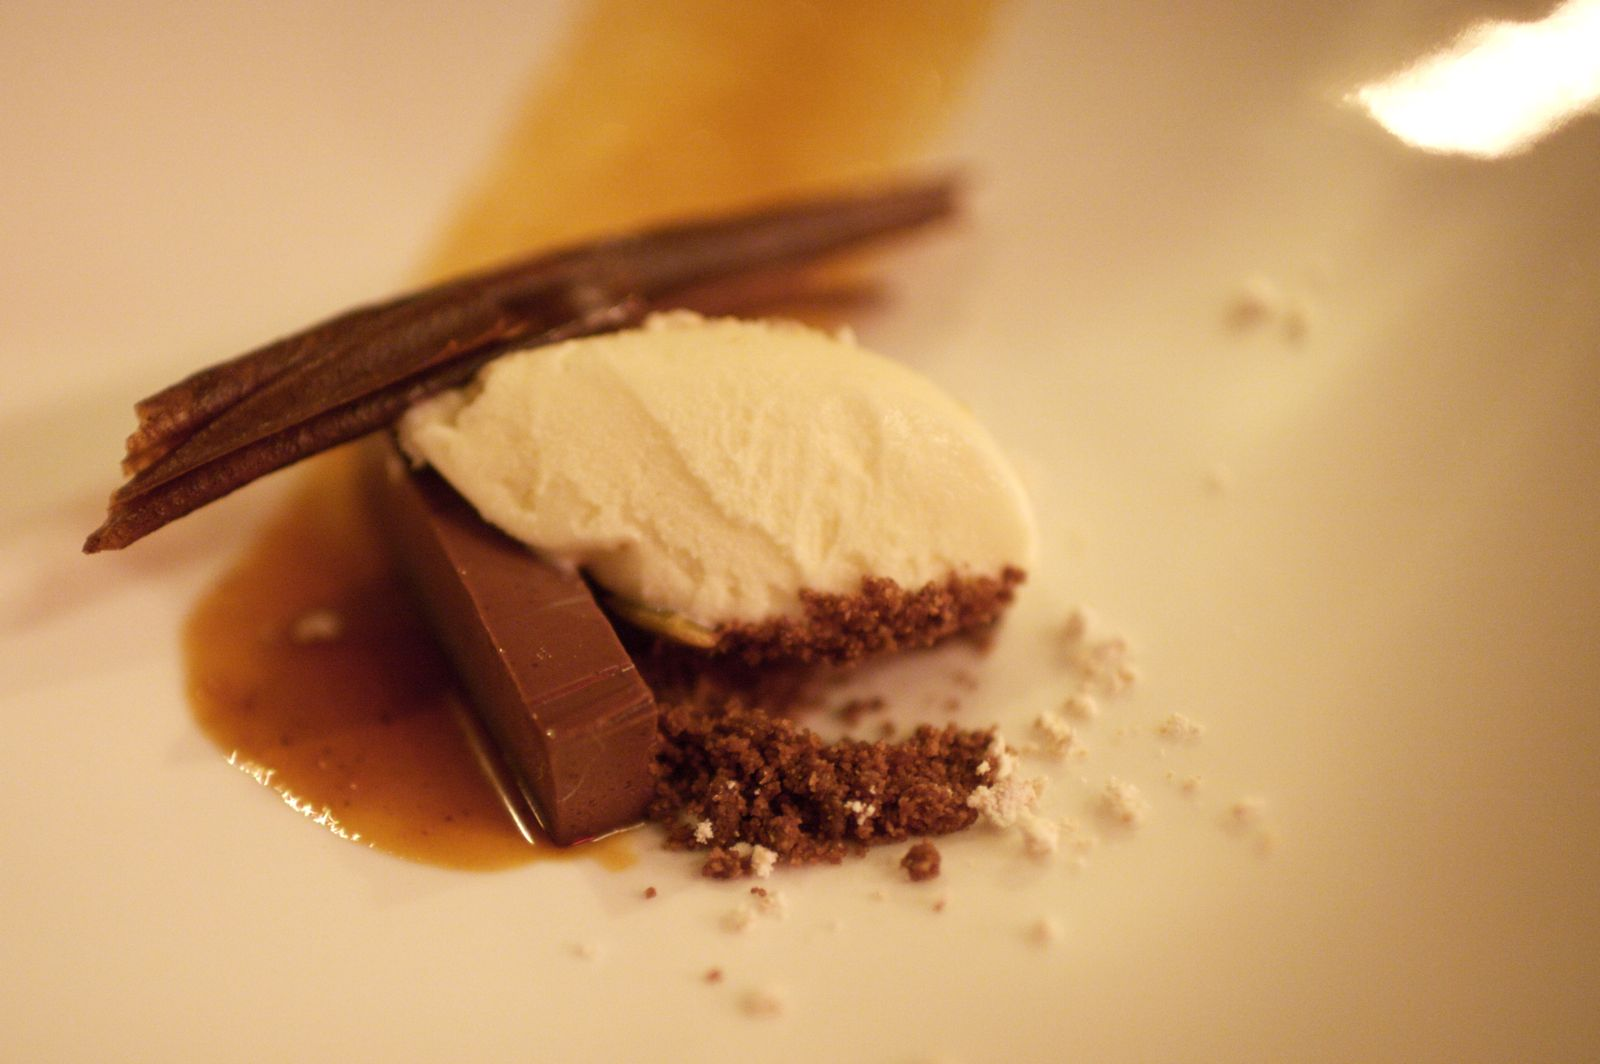 Soft Chocolate, Sesame Ice Cream, Mole